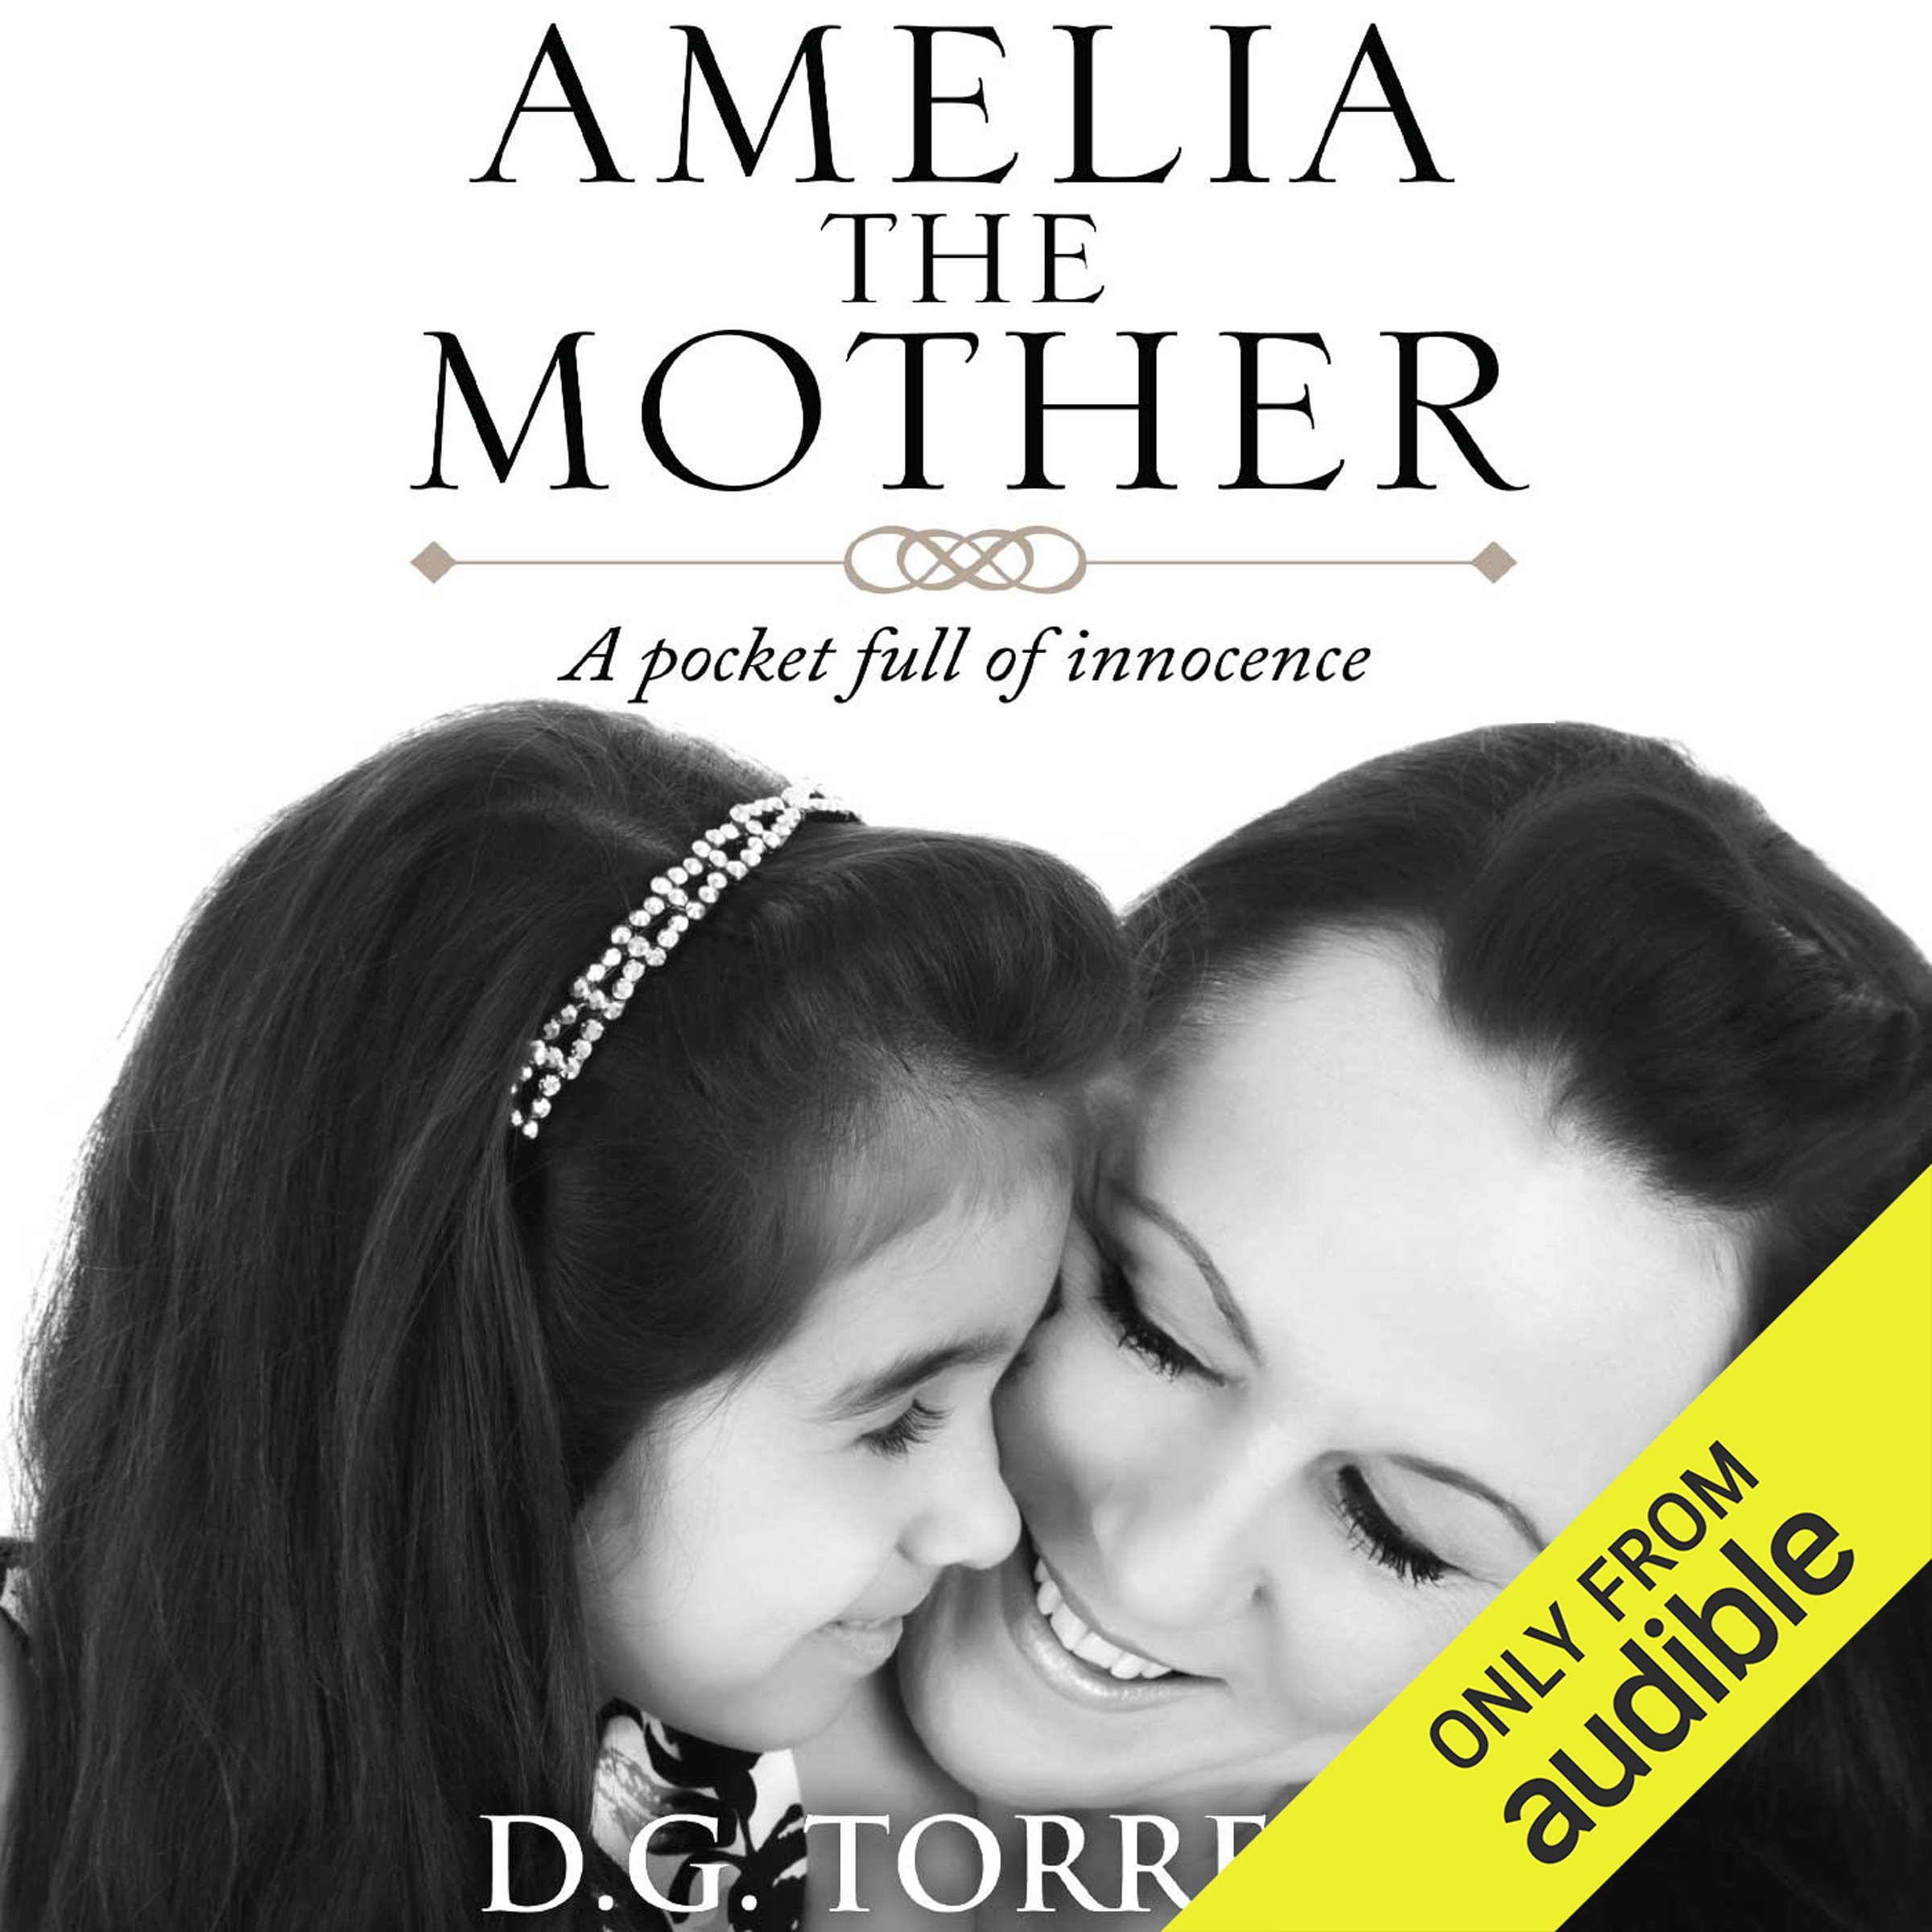 Amelia the Mother: A Pocket Full of Innocence